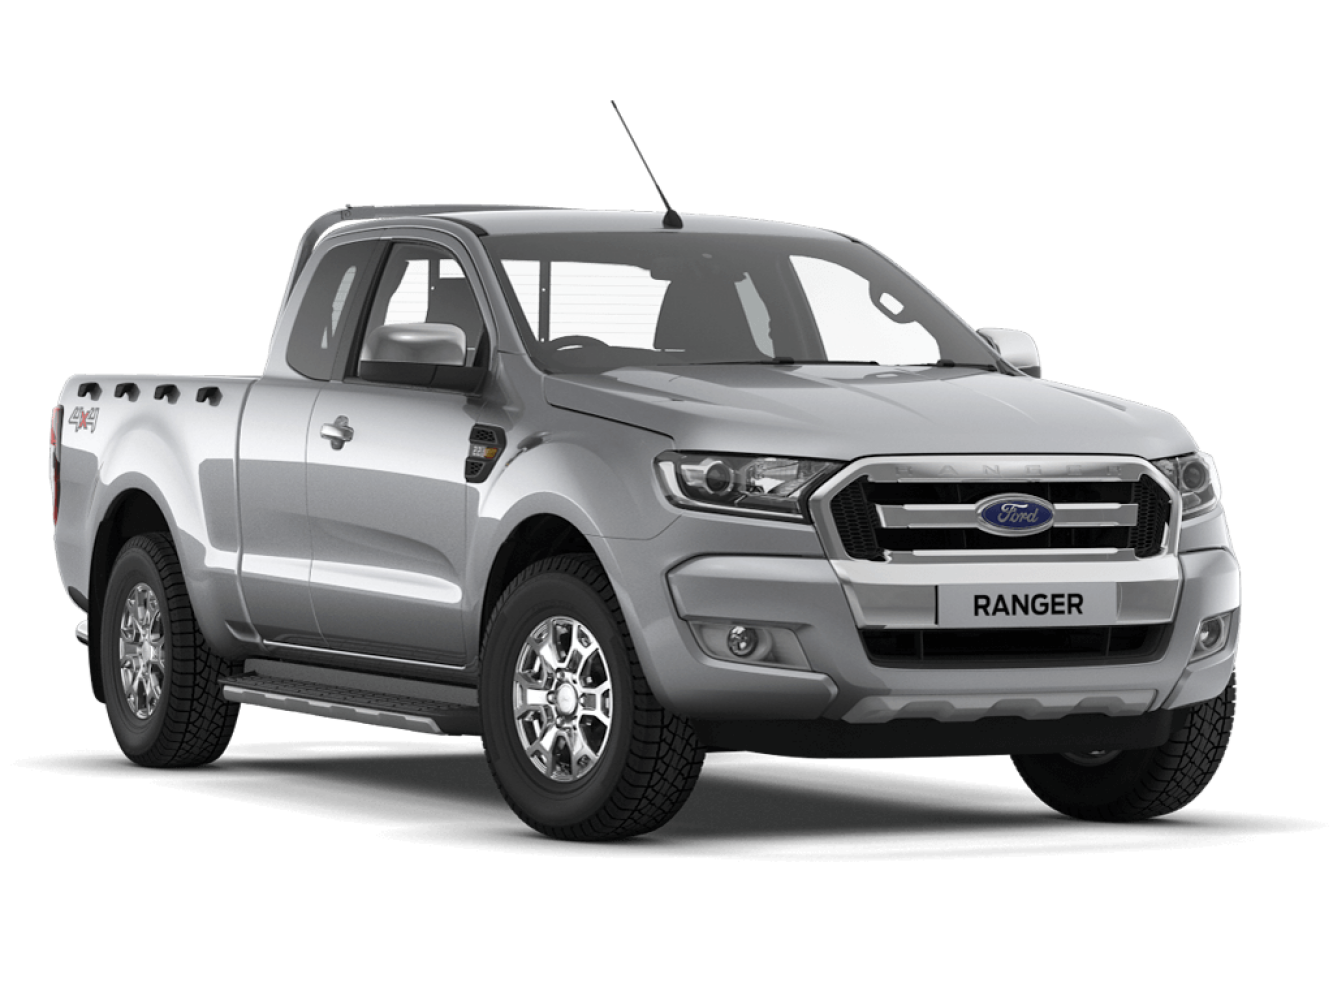 new ford ranger diesel pick up super xl 2 2 tdci for sale. Black Bedroom Furniture Sets. Home Design Ideas